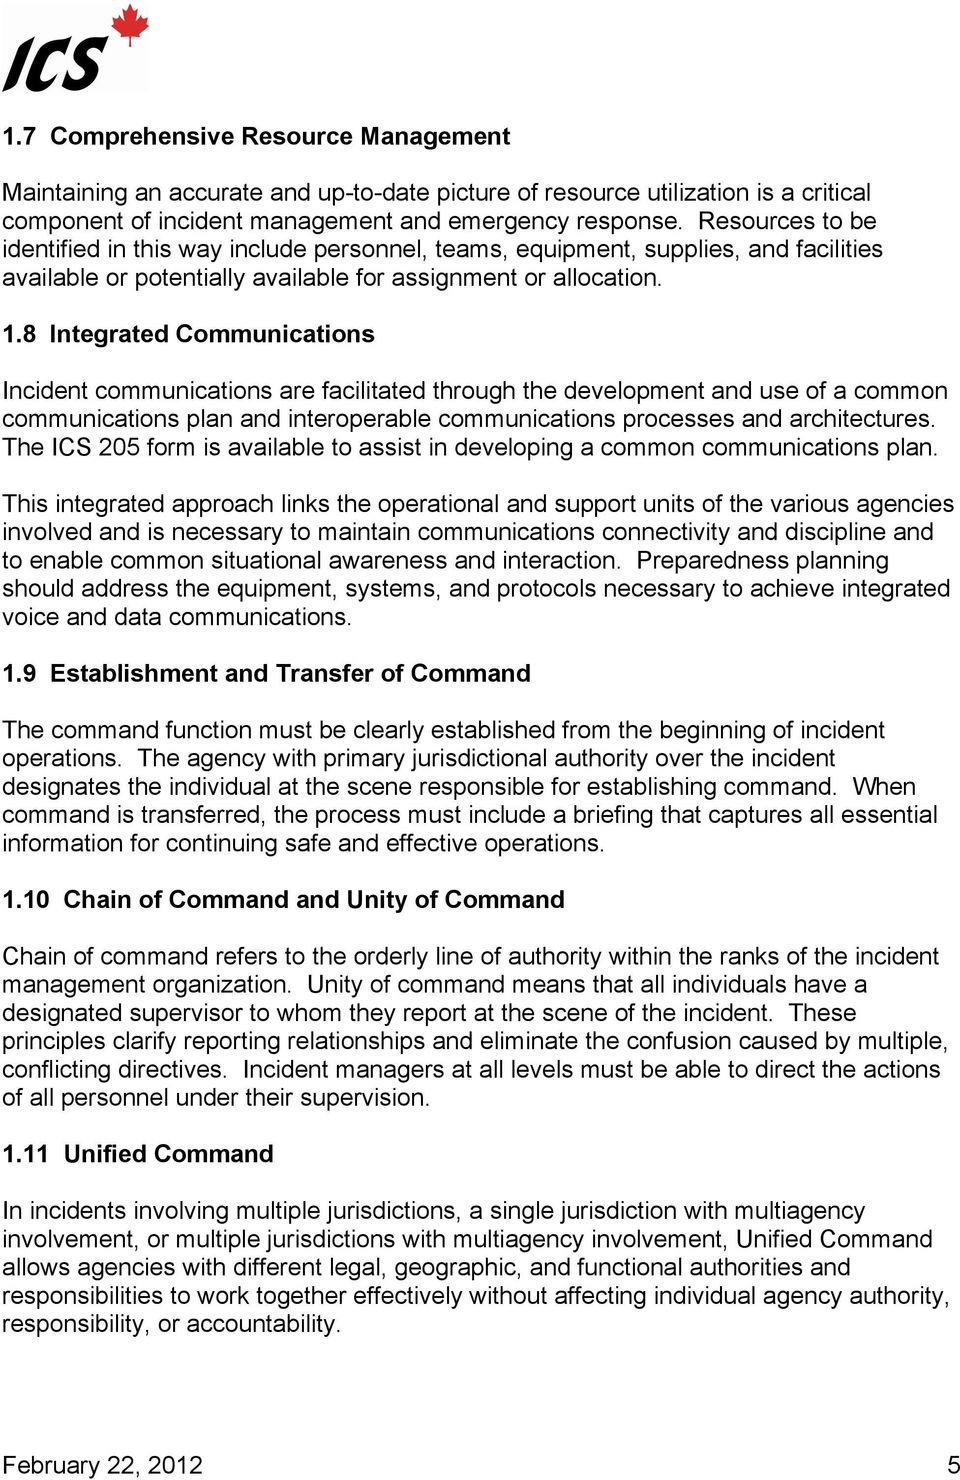 8 Integrated Communications Incident communications are facilitated through the development and use of a common communications plan and interoperable communications processes and architectures.